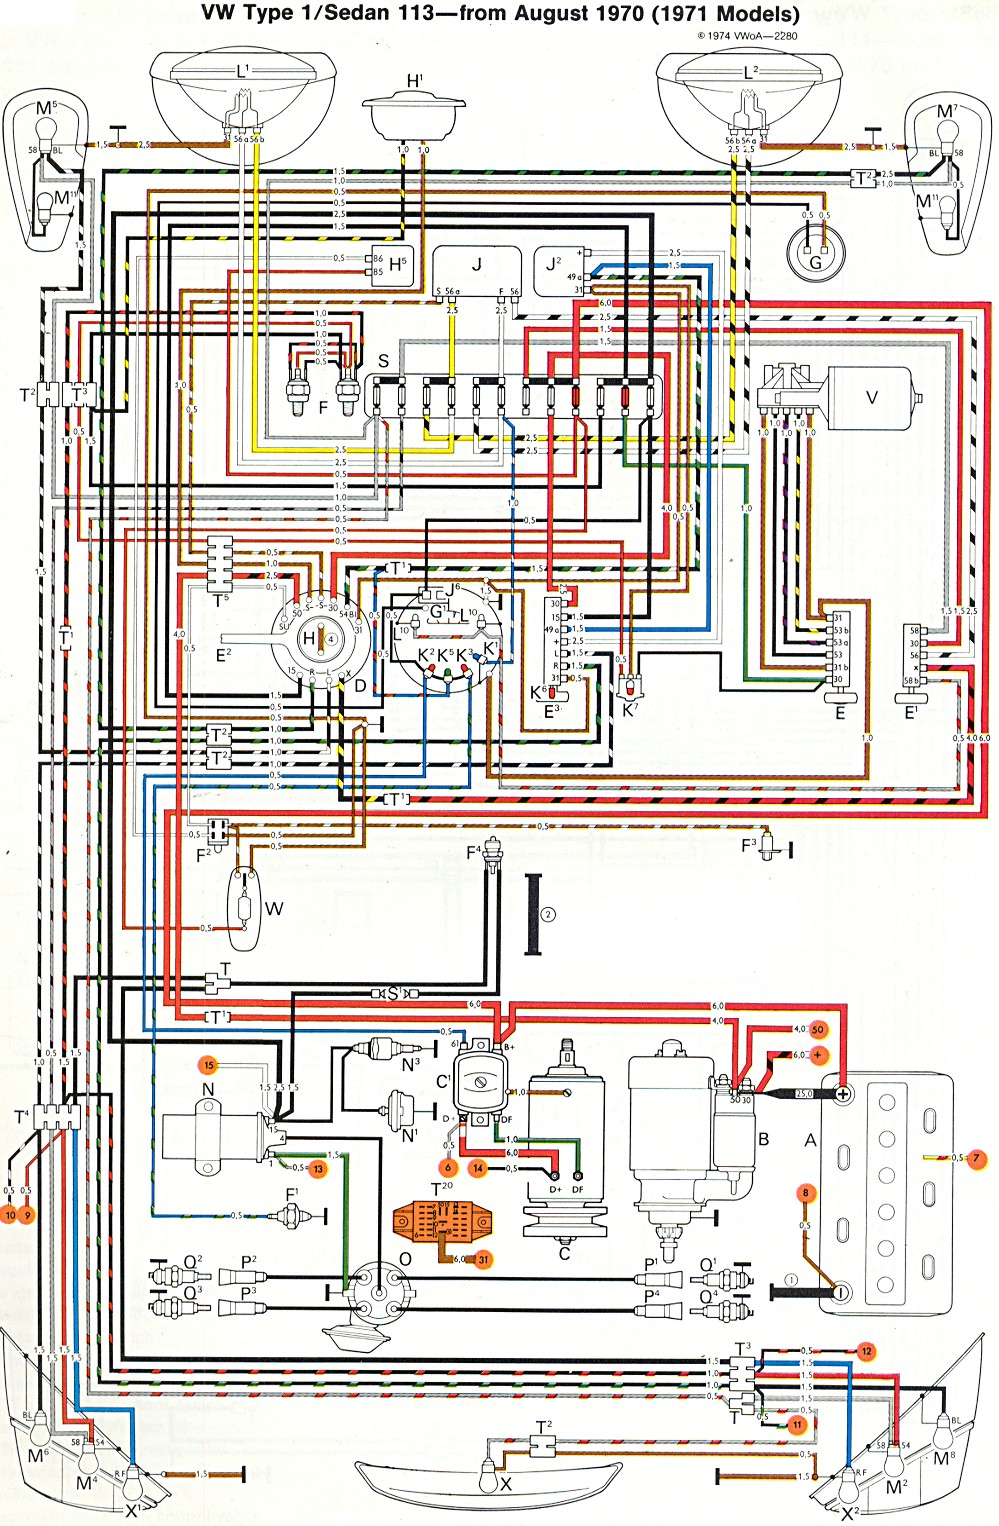 1971 vw alternator wiring diagram thesamba.com :: beetle - late model/super - 1968-up - view ... 1600 vw alternator wiring diagram